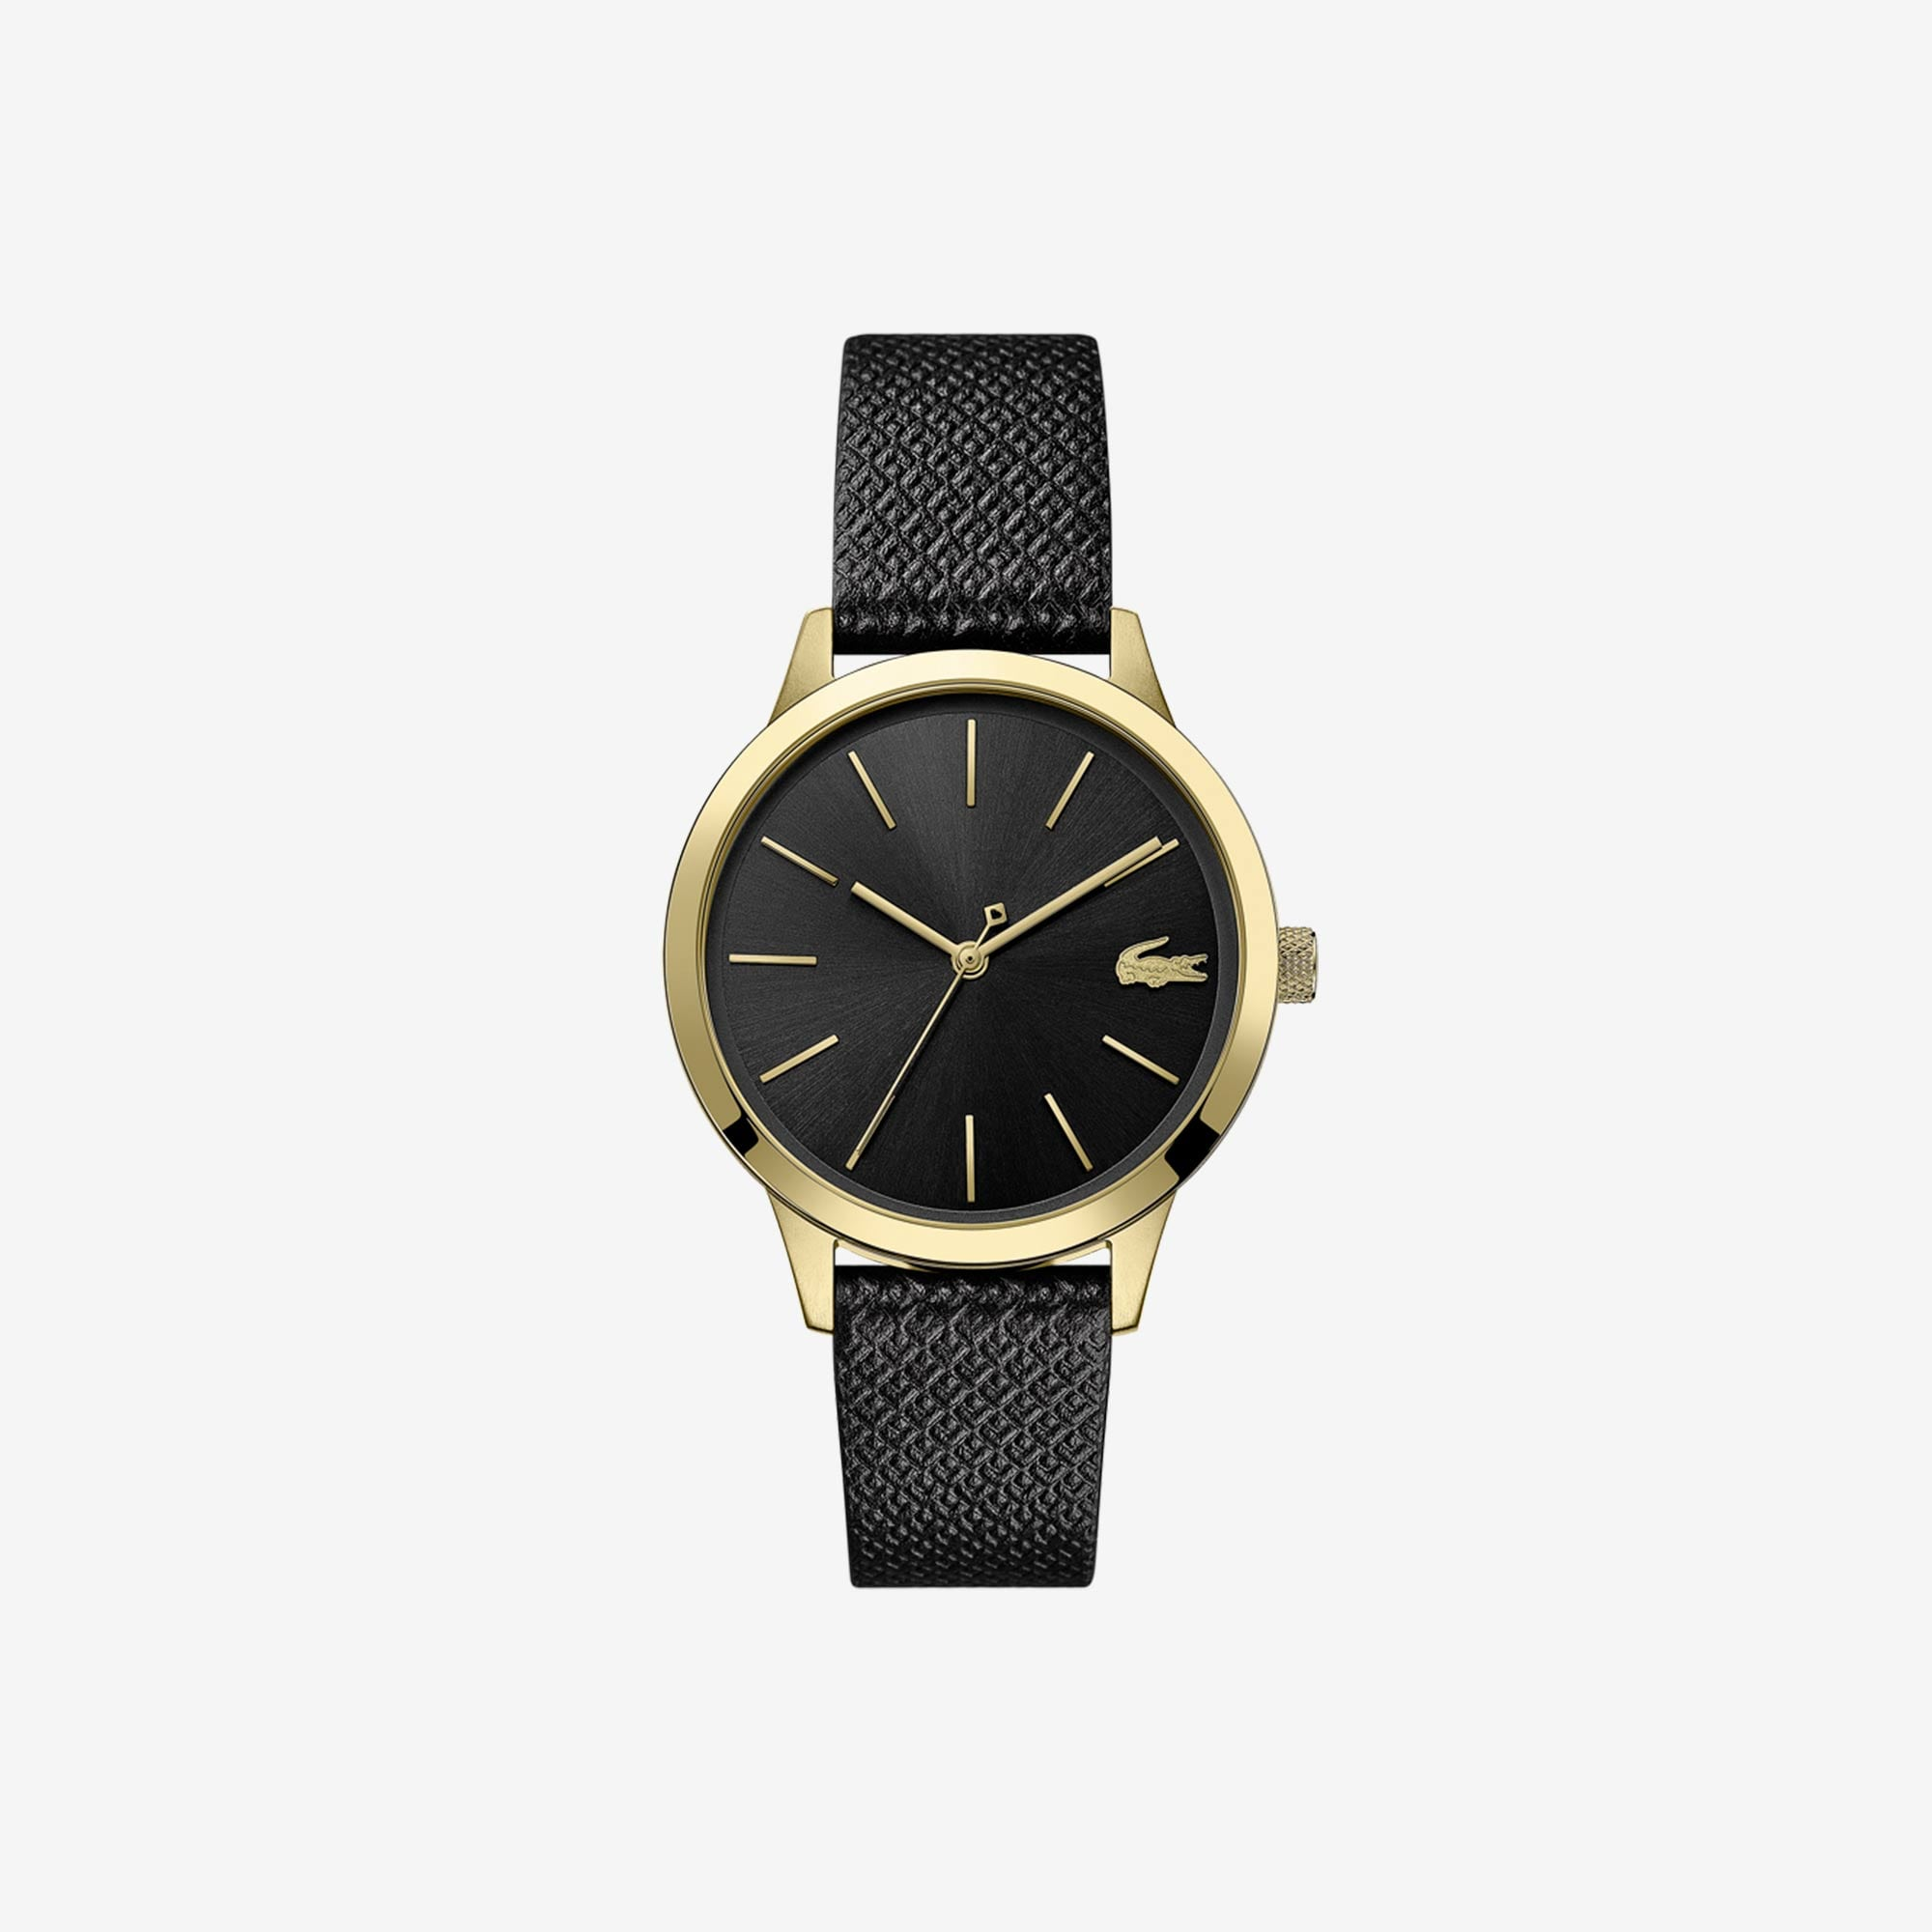 Ladies Lacoste 12.12 Premium Watch with Black Leather Petit Piqué Strap